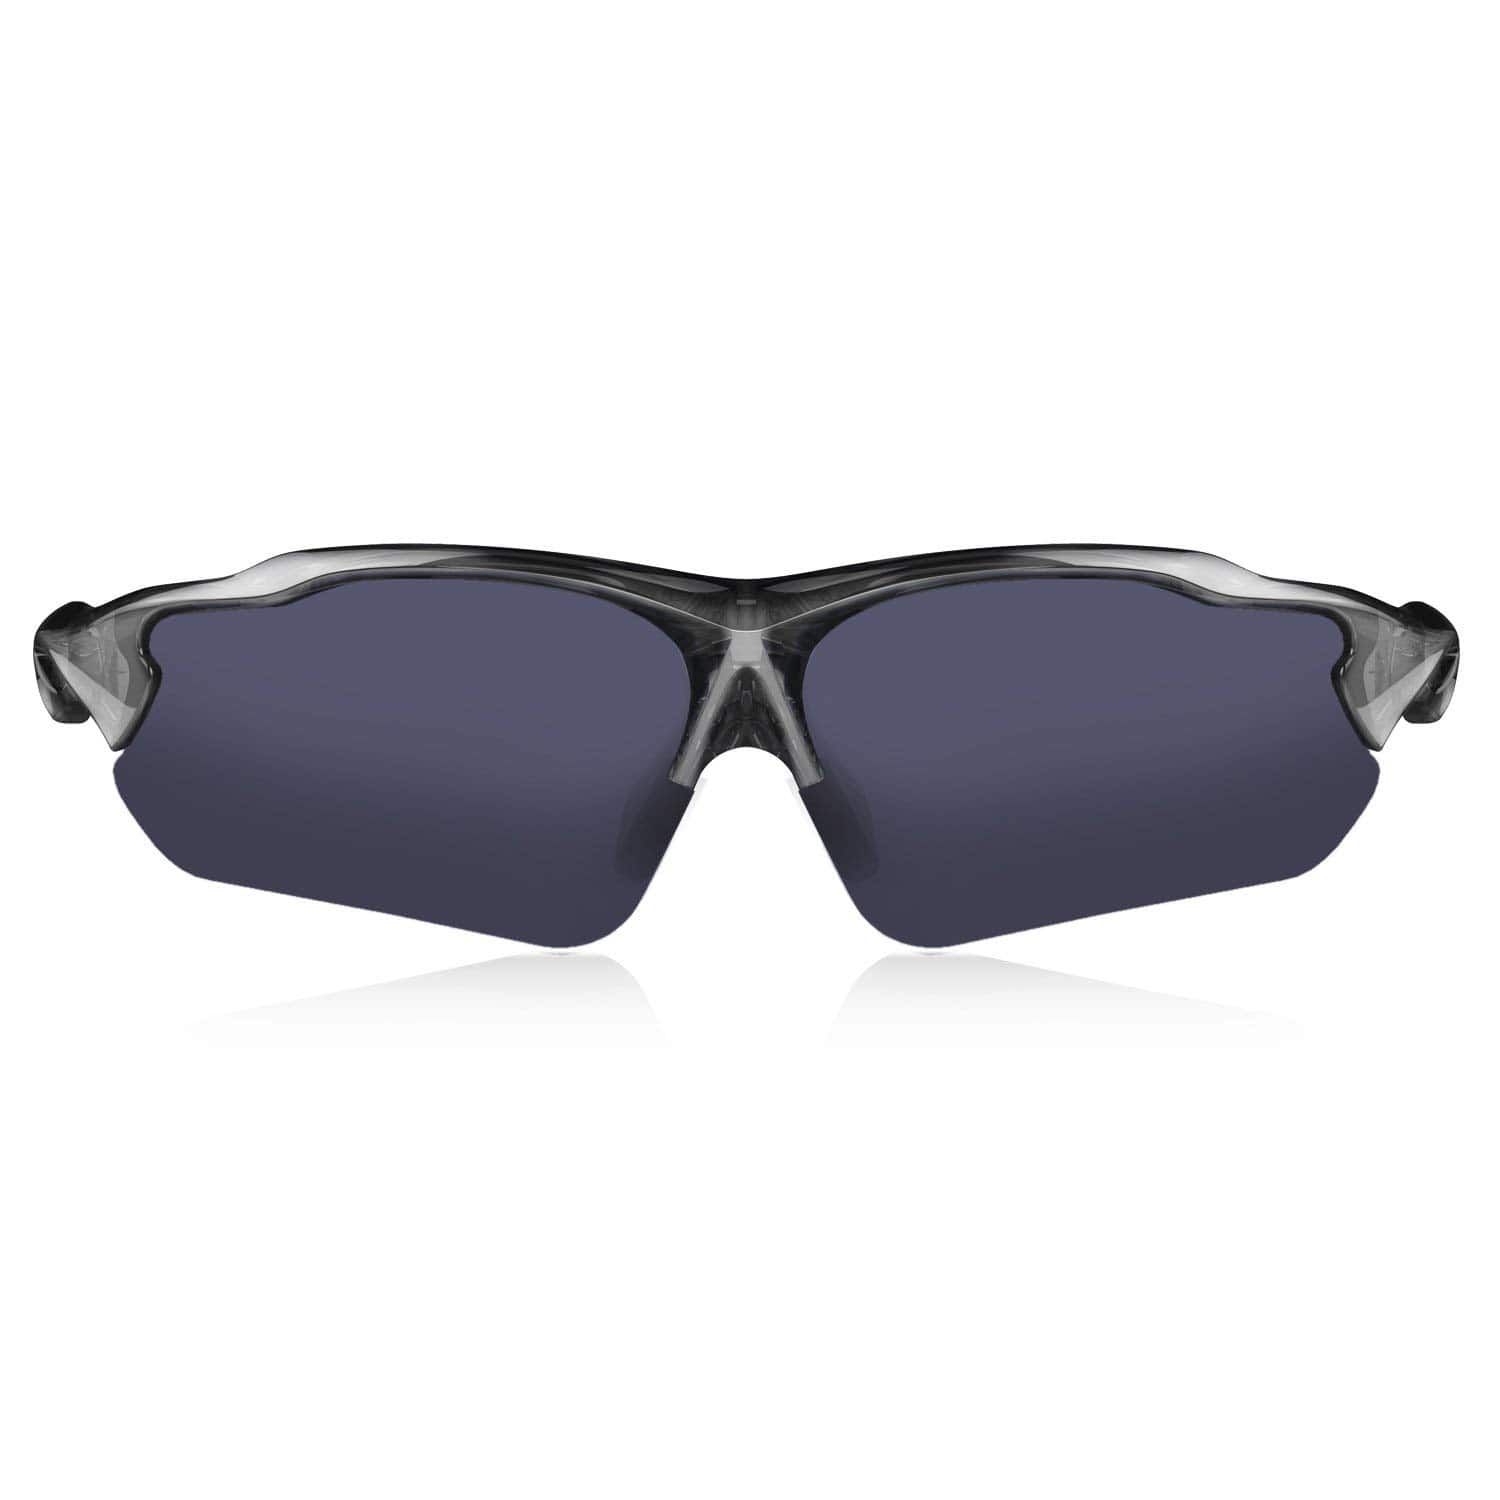 Hulislem Blade Ⅱ Sport Polarized Sunglasses-FDA Approved for $10.20 at AMAZON with coupon